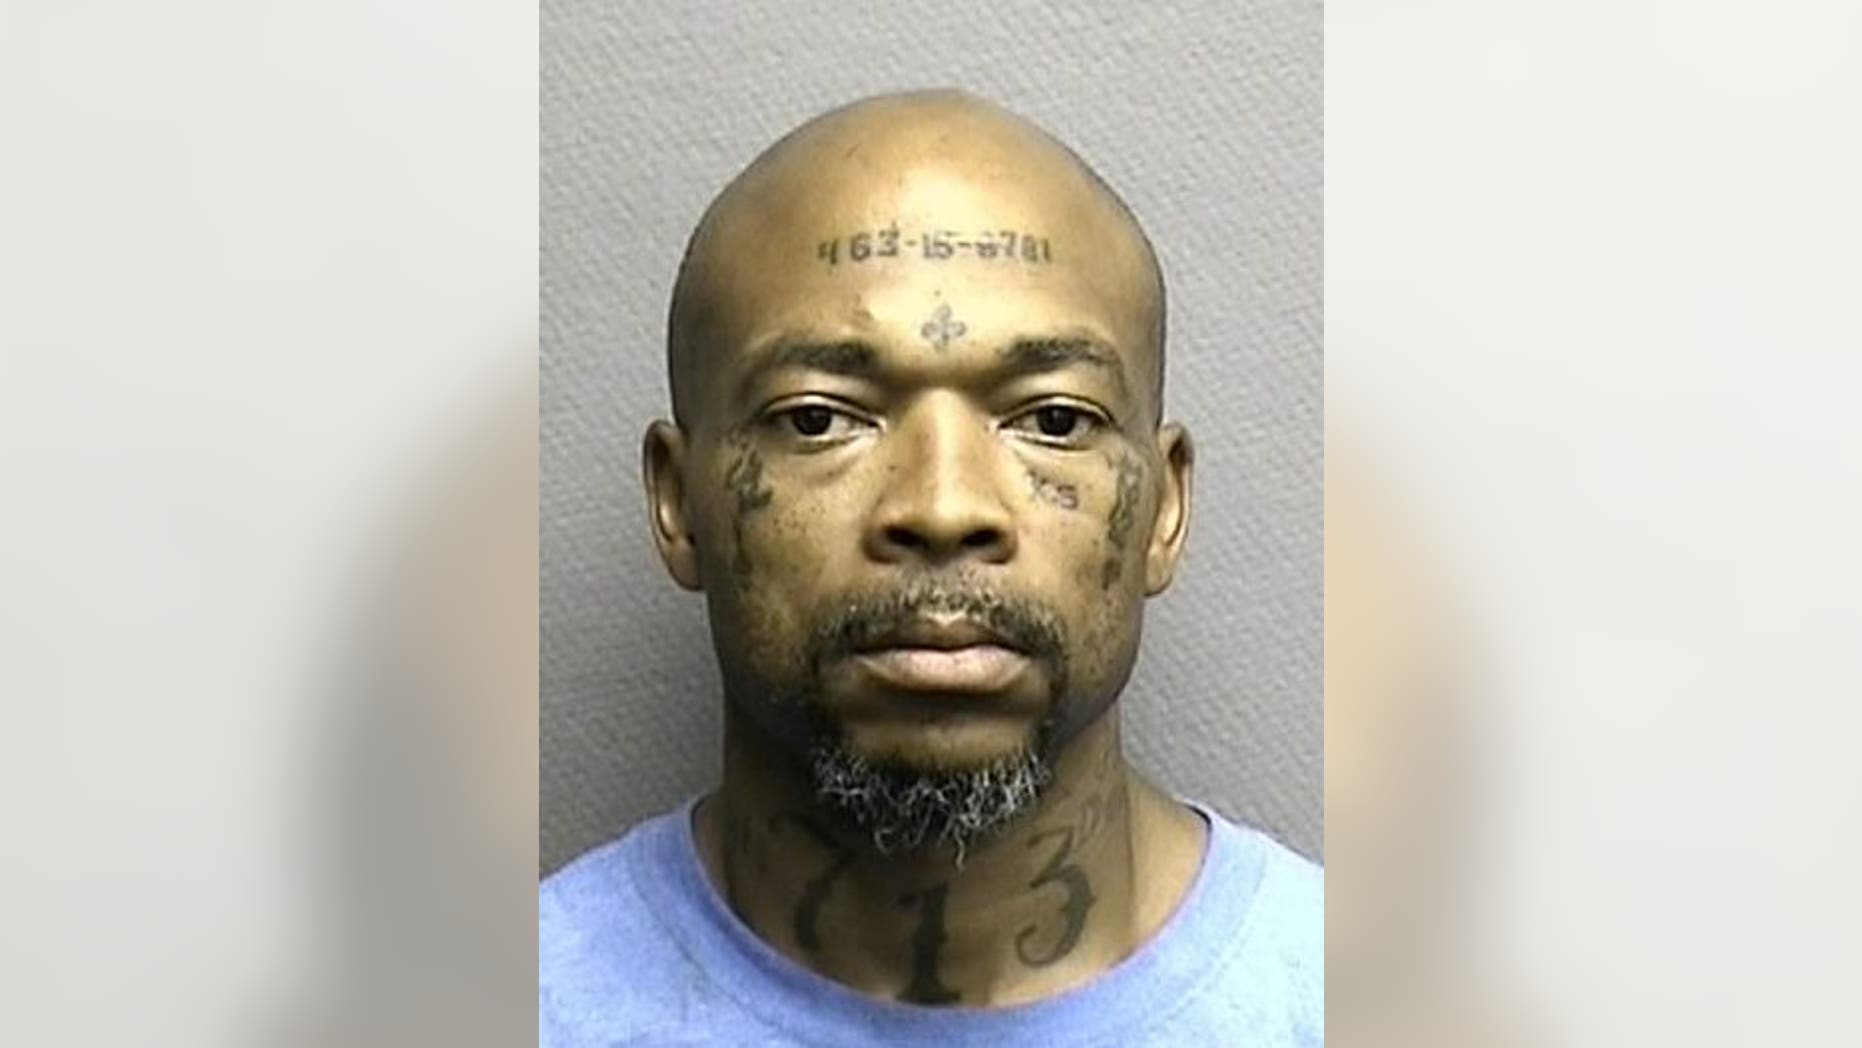 """Robert Wooten has his social security number and the area code """"713"""" tattooed on his face and neck."""